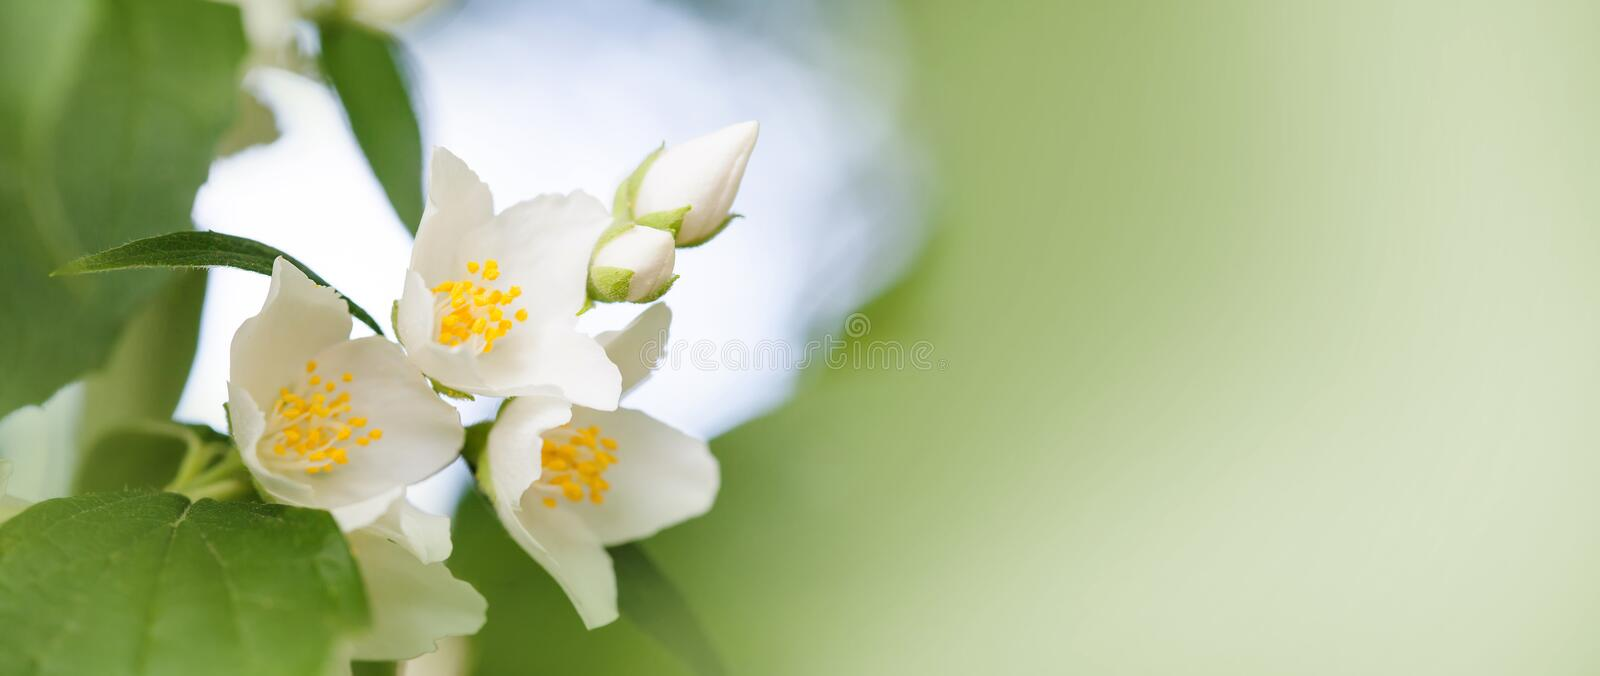 Tender jasmine flowers on soft blurred background. Blossoming white petals plant, summertime garden scene. Macro view. Photo. shallow depth of field copy space stock image